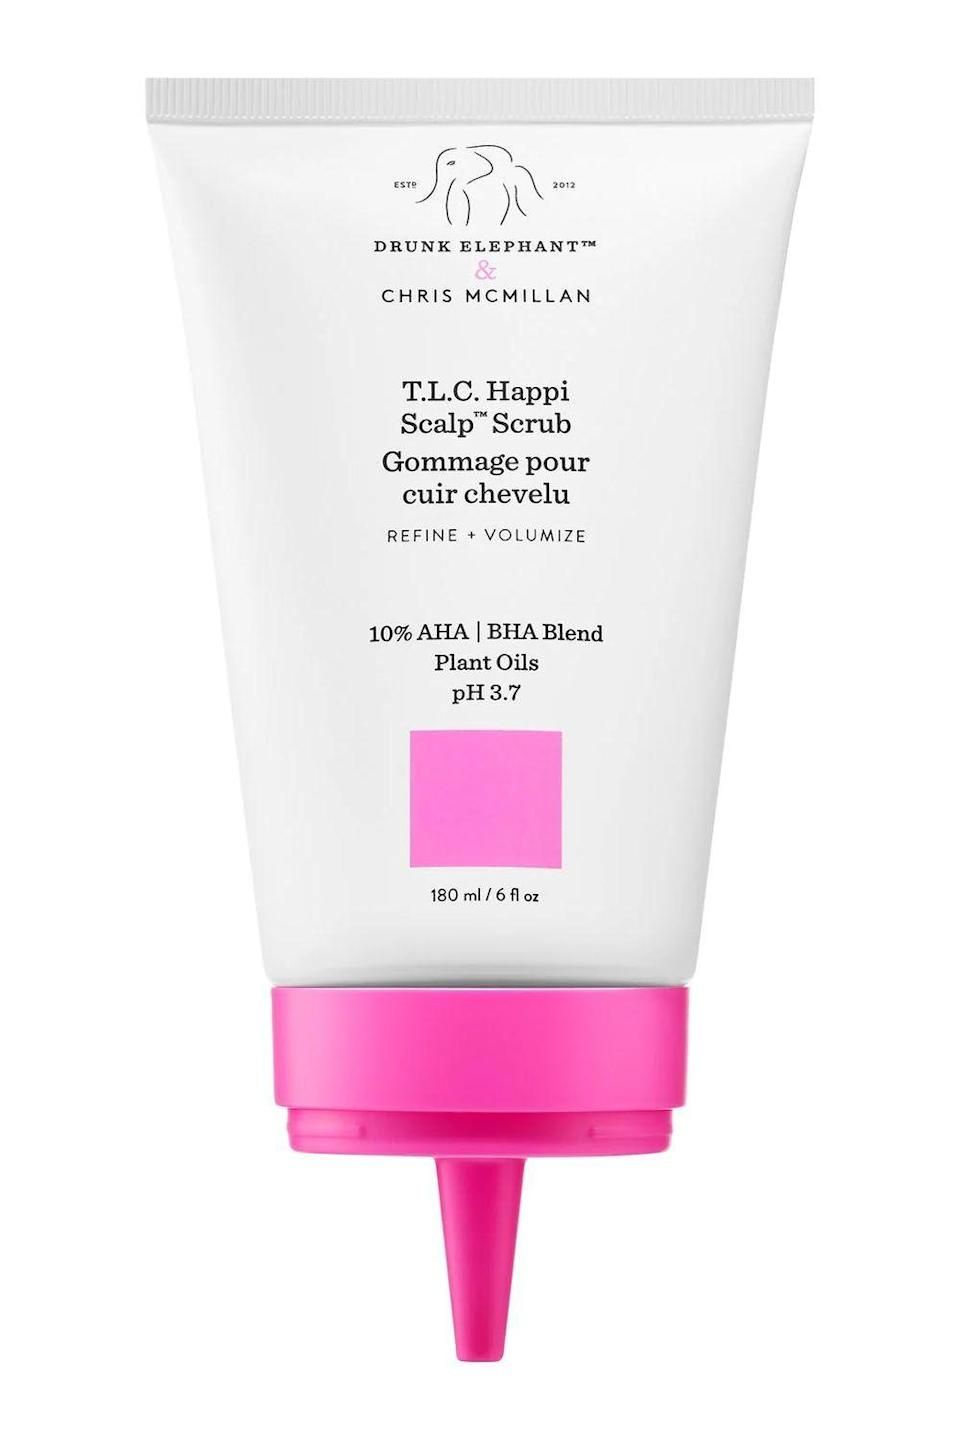 """<p><strong>Drunk Elephant</strong></p><p>sephora.com</p><p><strong>$36.00</strong></p><p><a href=""""https://go.redirectingat.com?id=74968X1596630&url=https%3A%2F%2Fwww.sephora.com%2Fproduct%2Fdrunk-elephant-t-l-c-happi-scalp-scrub-P457205&sref=https%3A%2F%2Fwww.cosmopolitan.com%2Fstyle-beauty%2Fbeauty%2Fg26114920%2Fbest-scalp-scrubs%2F"""" rel=""""nofollow noopener"""" target=""""_blank"""" data-ylk=""""slk:Shop Now"""" class=""""link rapid-noclick-resp"""">Shop Now</a></p><p>FYI: Just because this scalp scrub is formulated with <a href=""""https://www.cosmopolitan.com/style-beauty/beauty/g20126849/organic-skin-care-brands-products/"""" rel=""""nofollow noopener"""" target=""""_blank"""" data-ylk=""""slk:natural"""" class=""""link rapid-noclick-resp"""">natural</a> ingredients doesn't mean it isn't powerful AF. The highlight of the formula is the AHA/BHA acid blend (yes, the same acids you put on your face) that <strong>break down dead skin cells and melt away your dry-shampoo buildup.</strong> And in case you're wondering if the acids will leave your scalp tight and dry, don't worry—the scrub is also filled with marula and mongogo oils to boost hydration levels.</p>"""